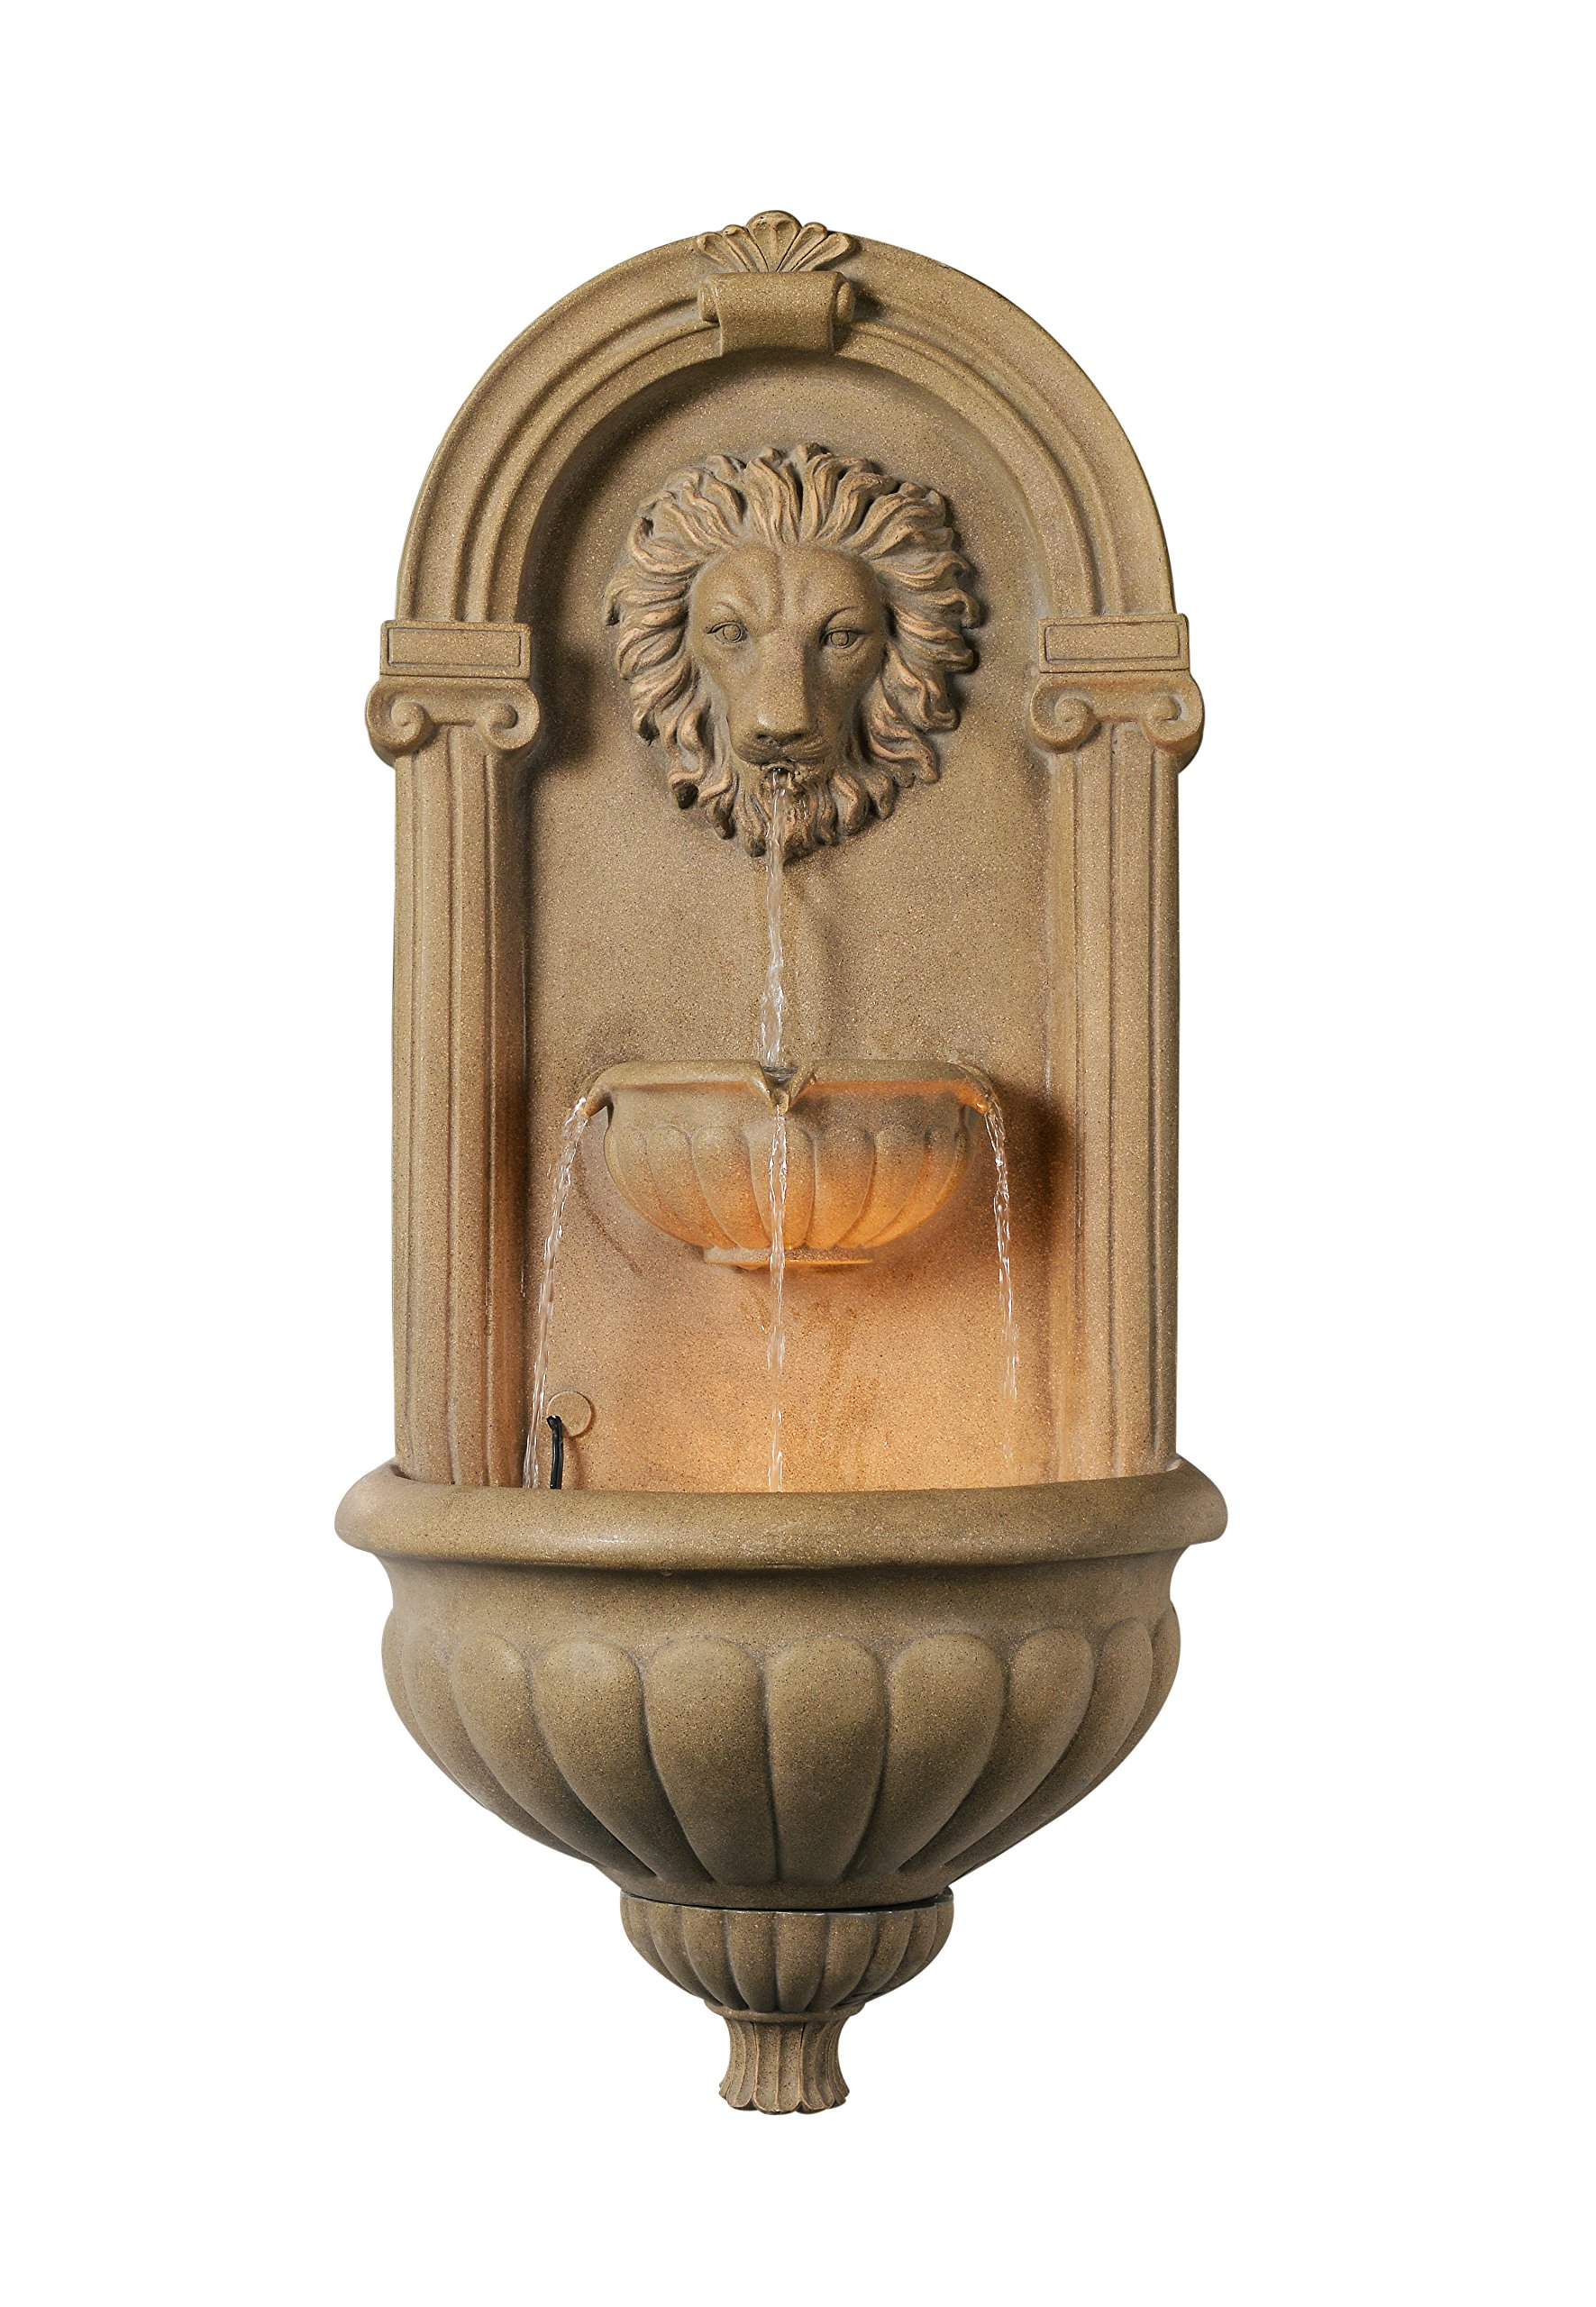 Kenroy Home 50026COQN Regal Wall Fountain, Coquina Finish